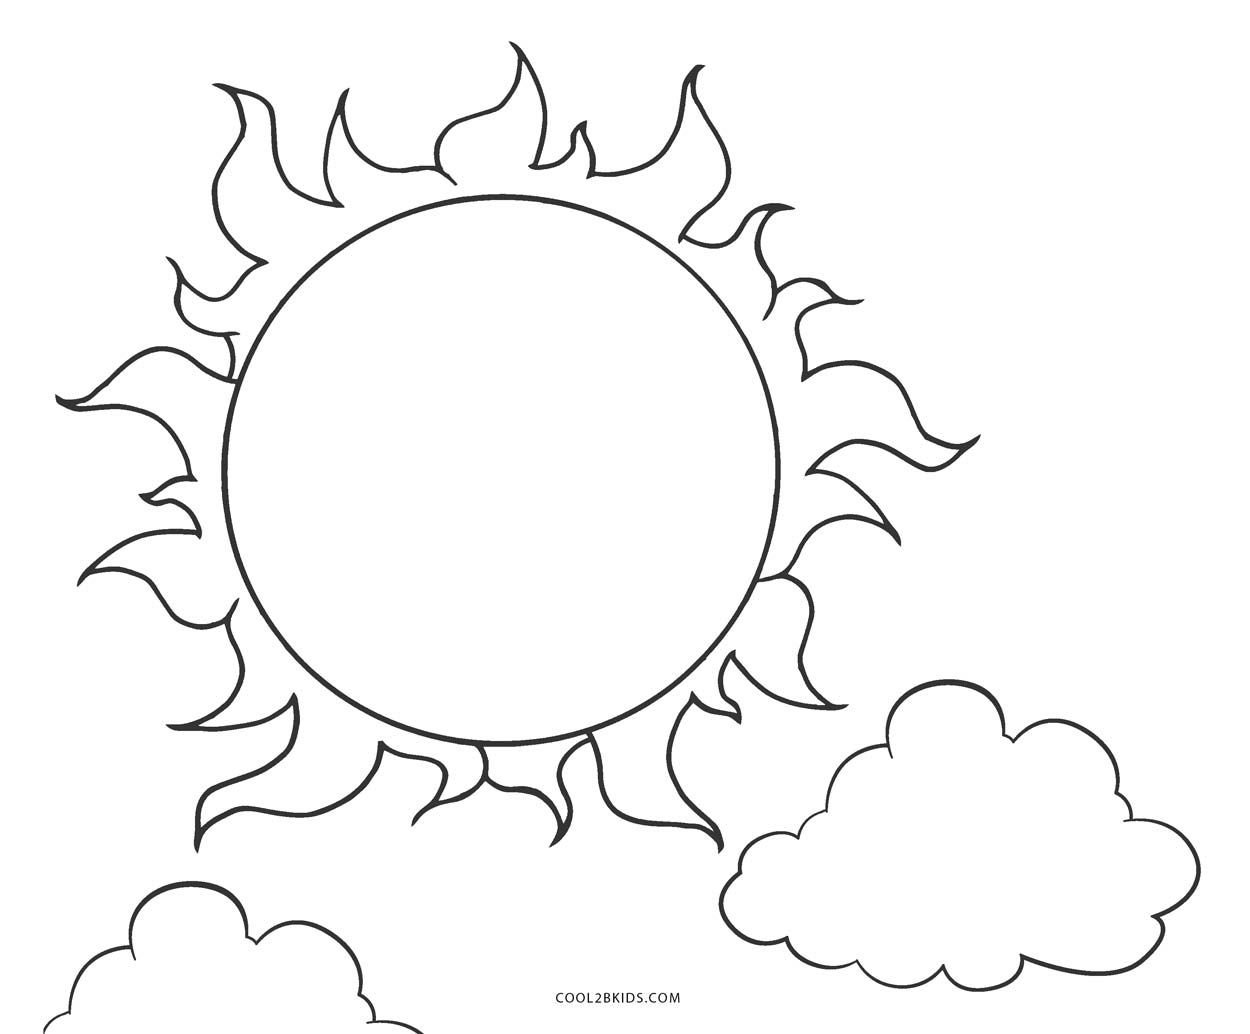 coloring sun miscellaneous coloring pages cool2bkids sun coloring